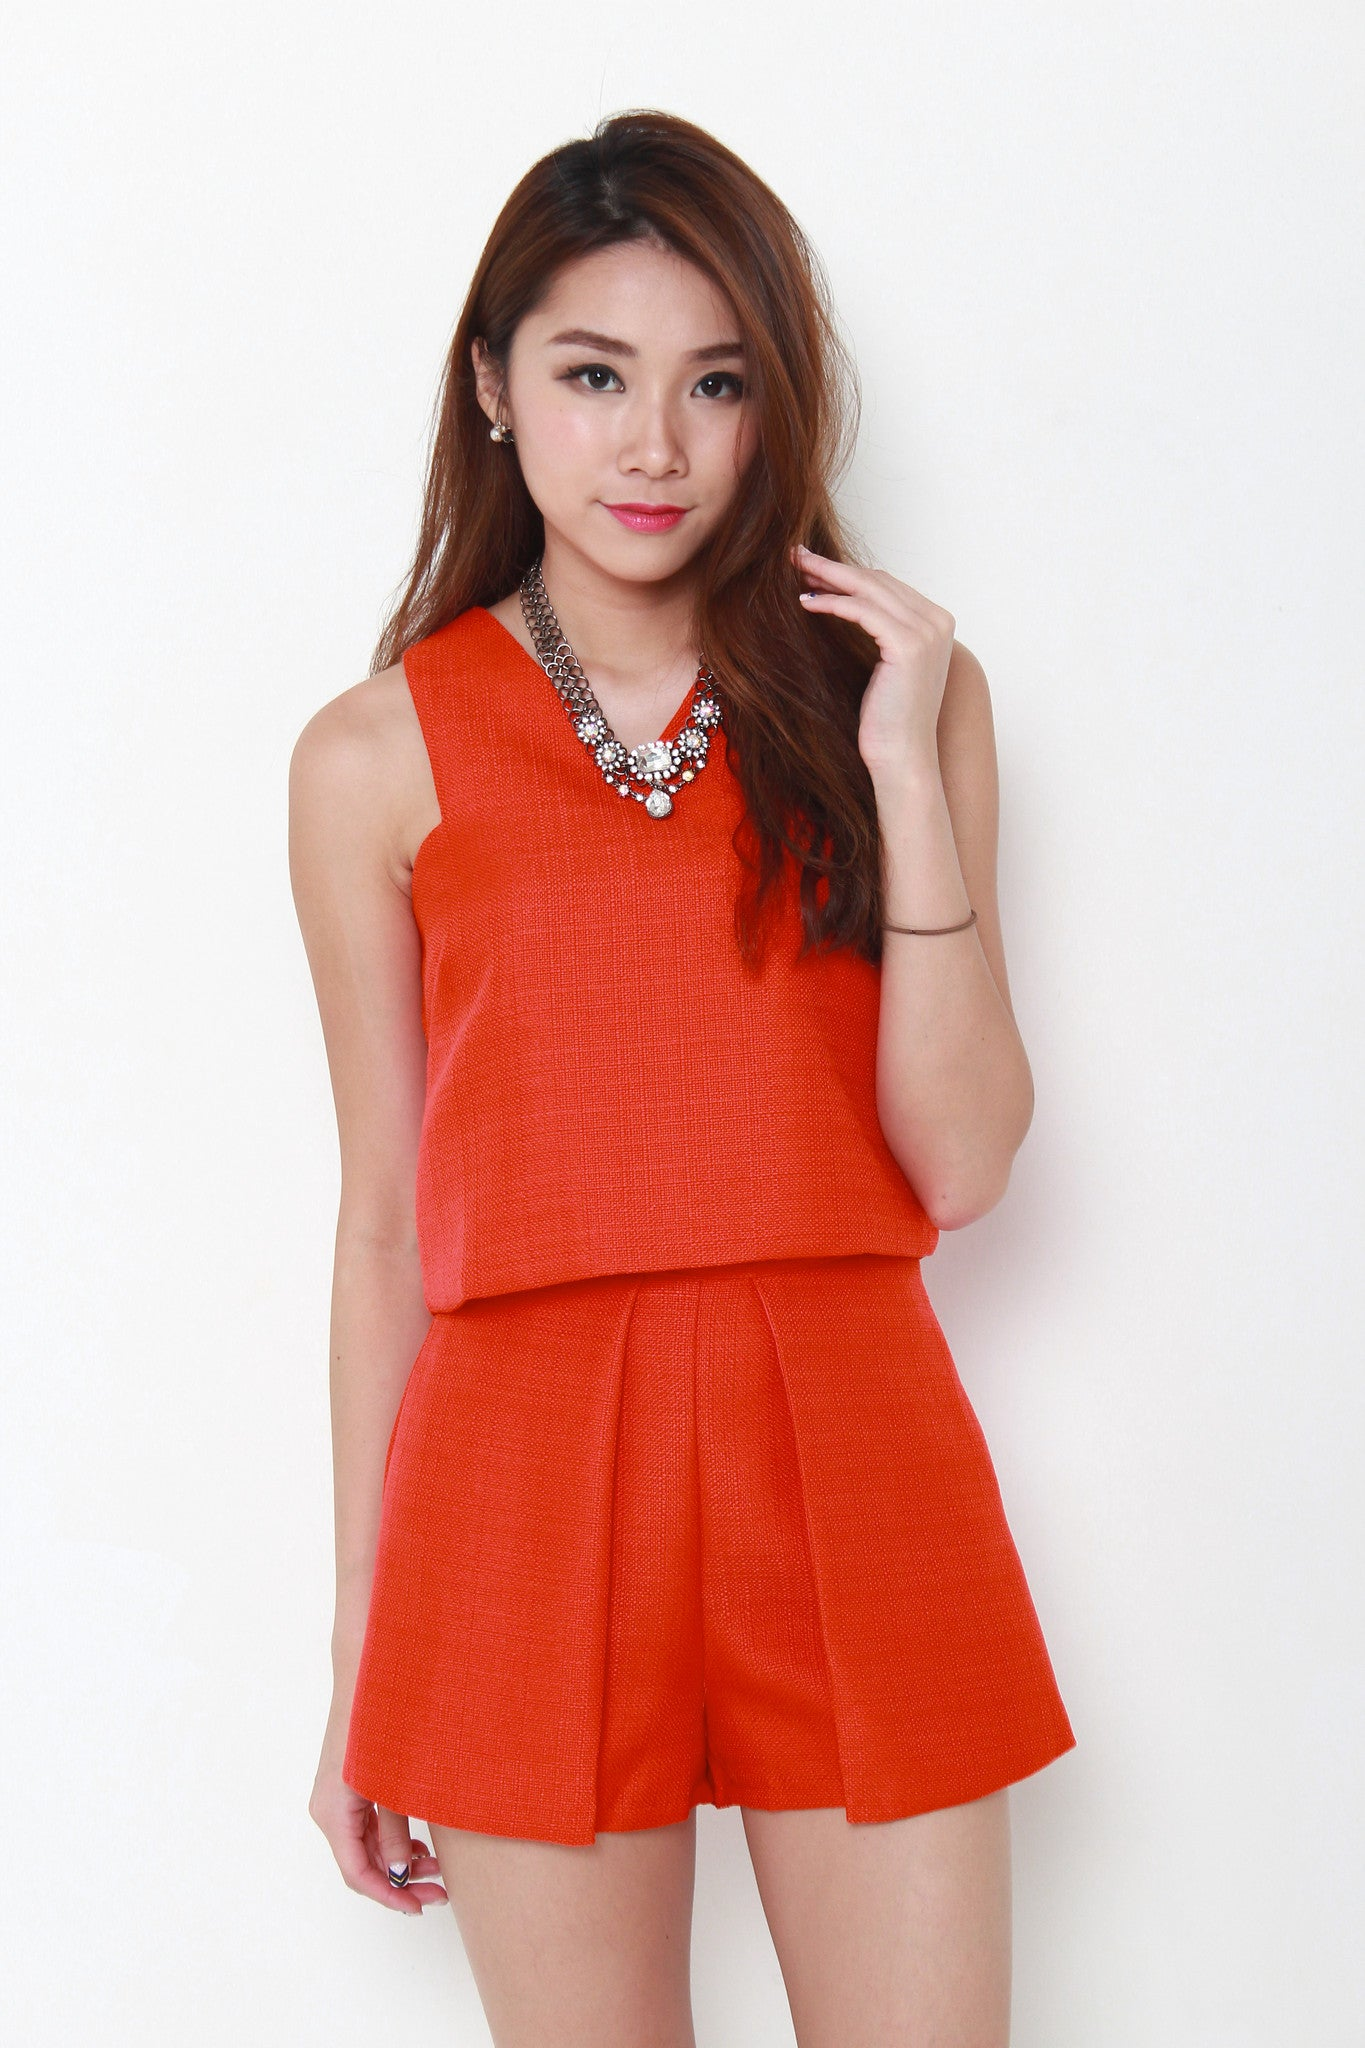 Sonia Tweed Crop Top in Orange